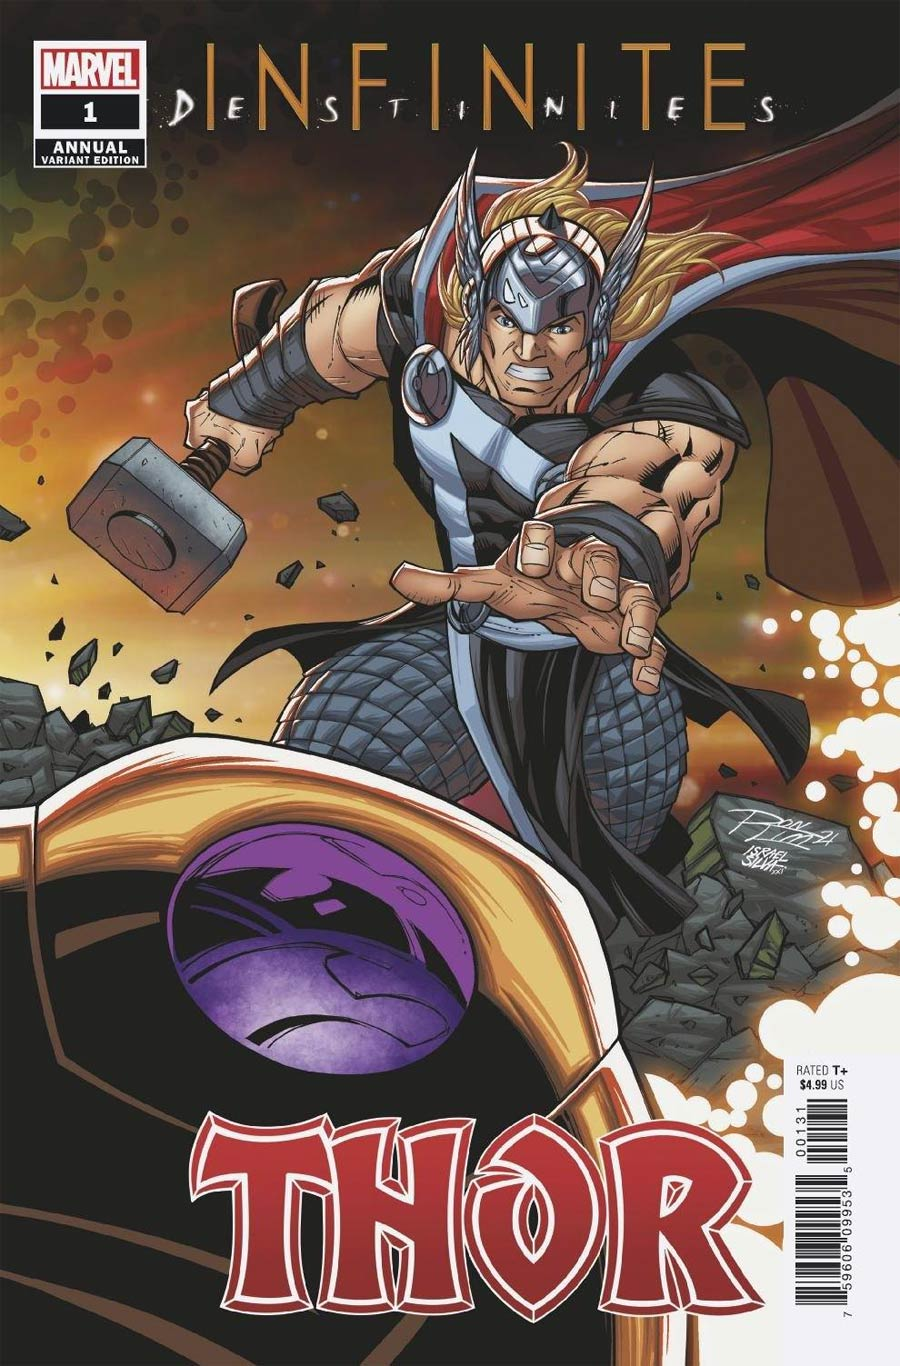 Thor Vol 6 Annual #1 Cover B Variant Ron Lim Connecting Cover (Infinite Destinies Tie-In)